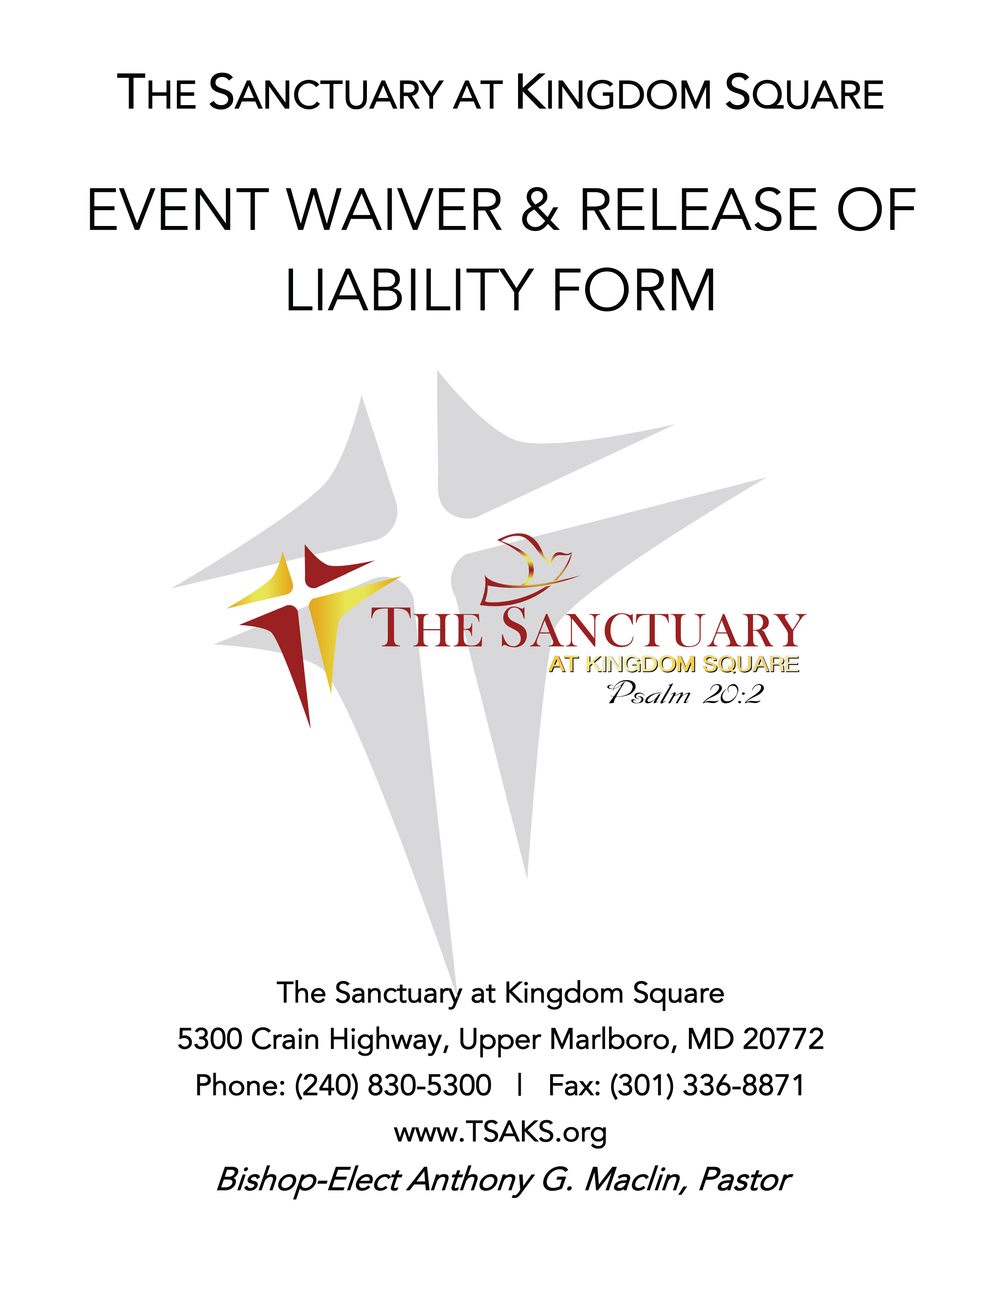 Ministry Event Waiver & Release of Liability rvsd.png